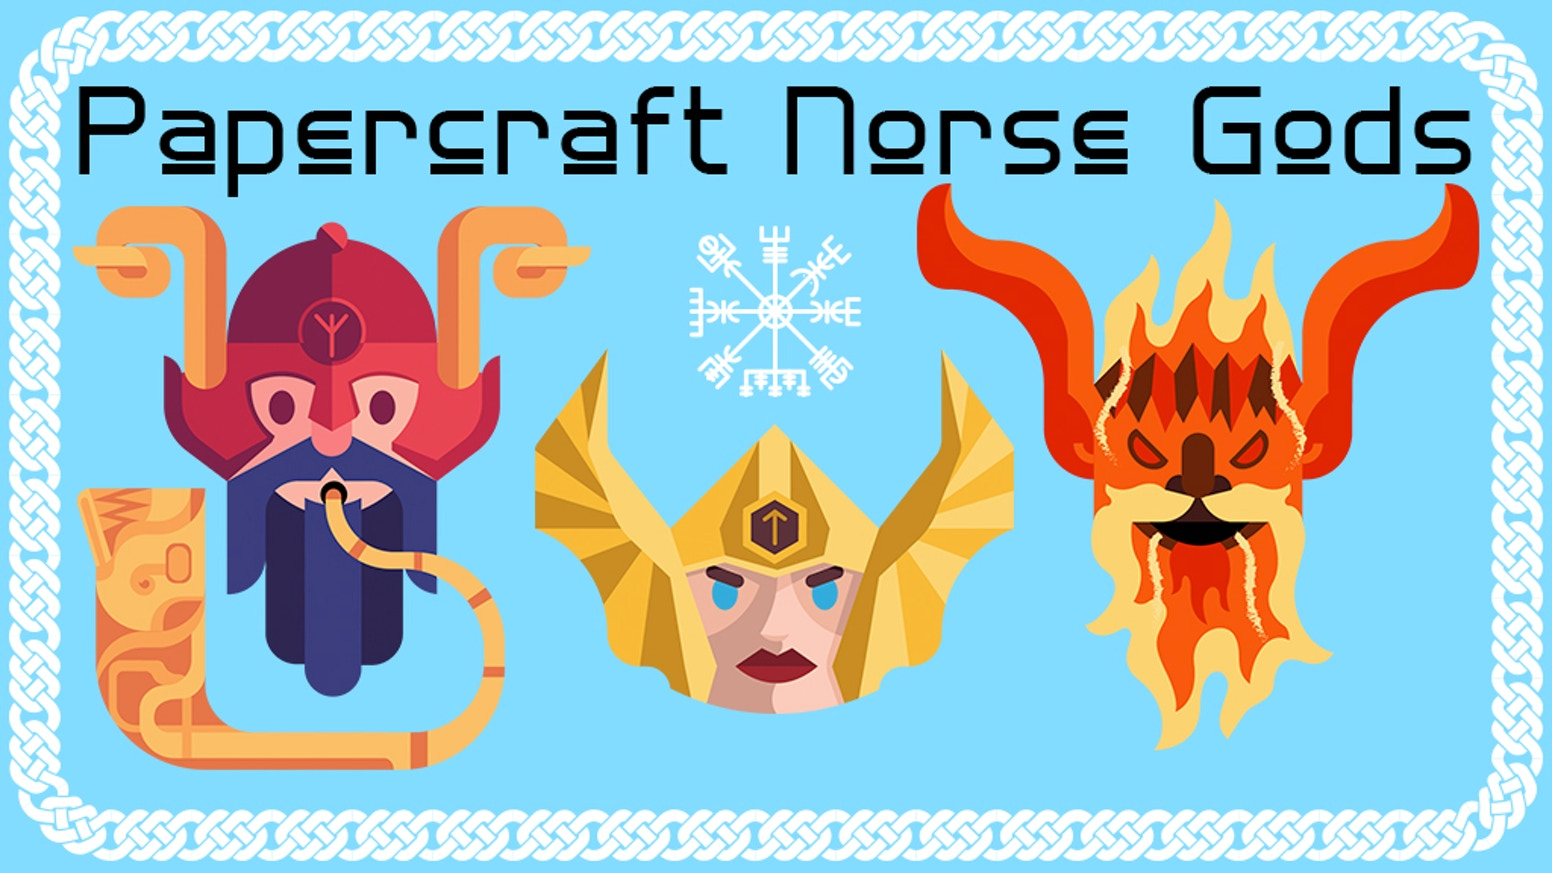 A fun papercraft toy and vinyl sticker project, featuring your favorite characters from Norse Mythology like Thor, Odin and Loki!